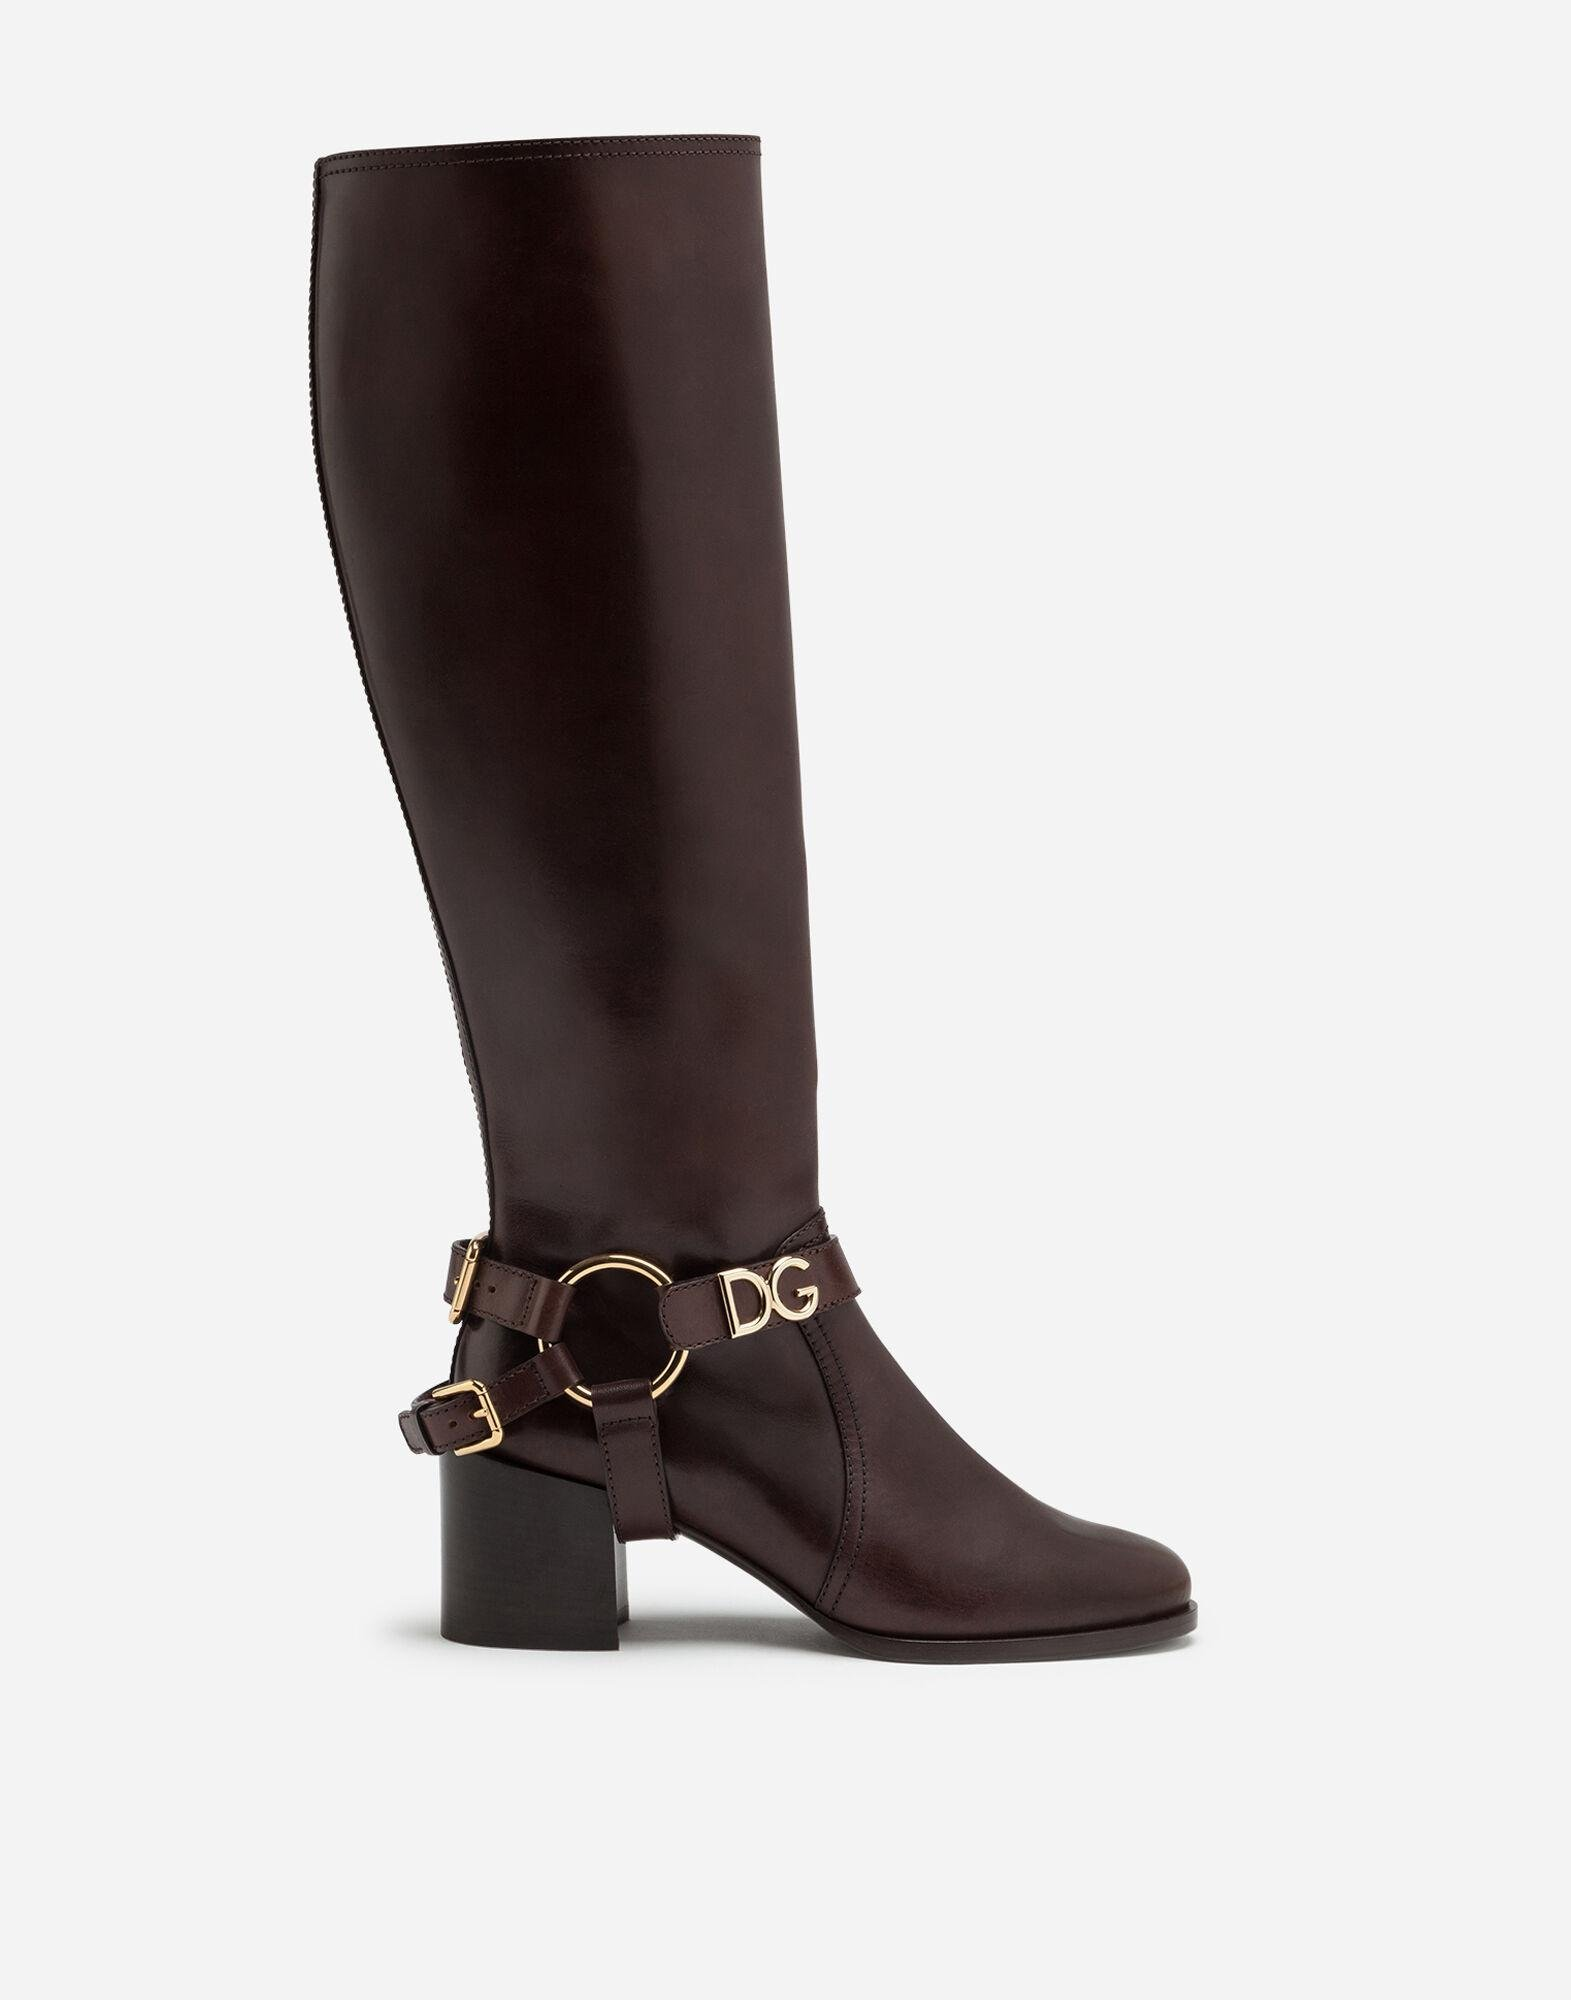 Boots in cowhide with DG bracket logo